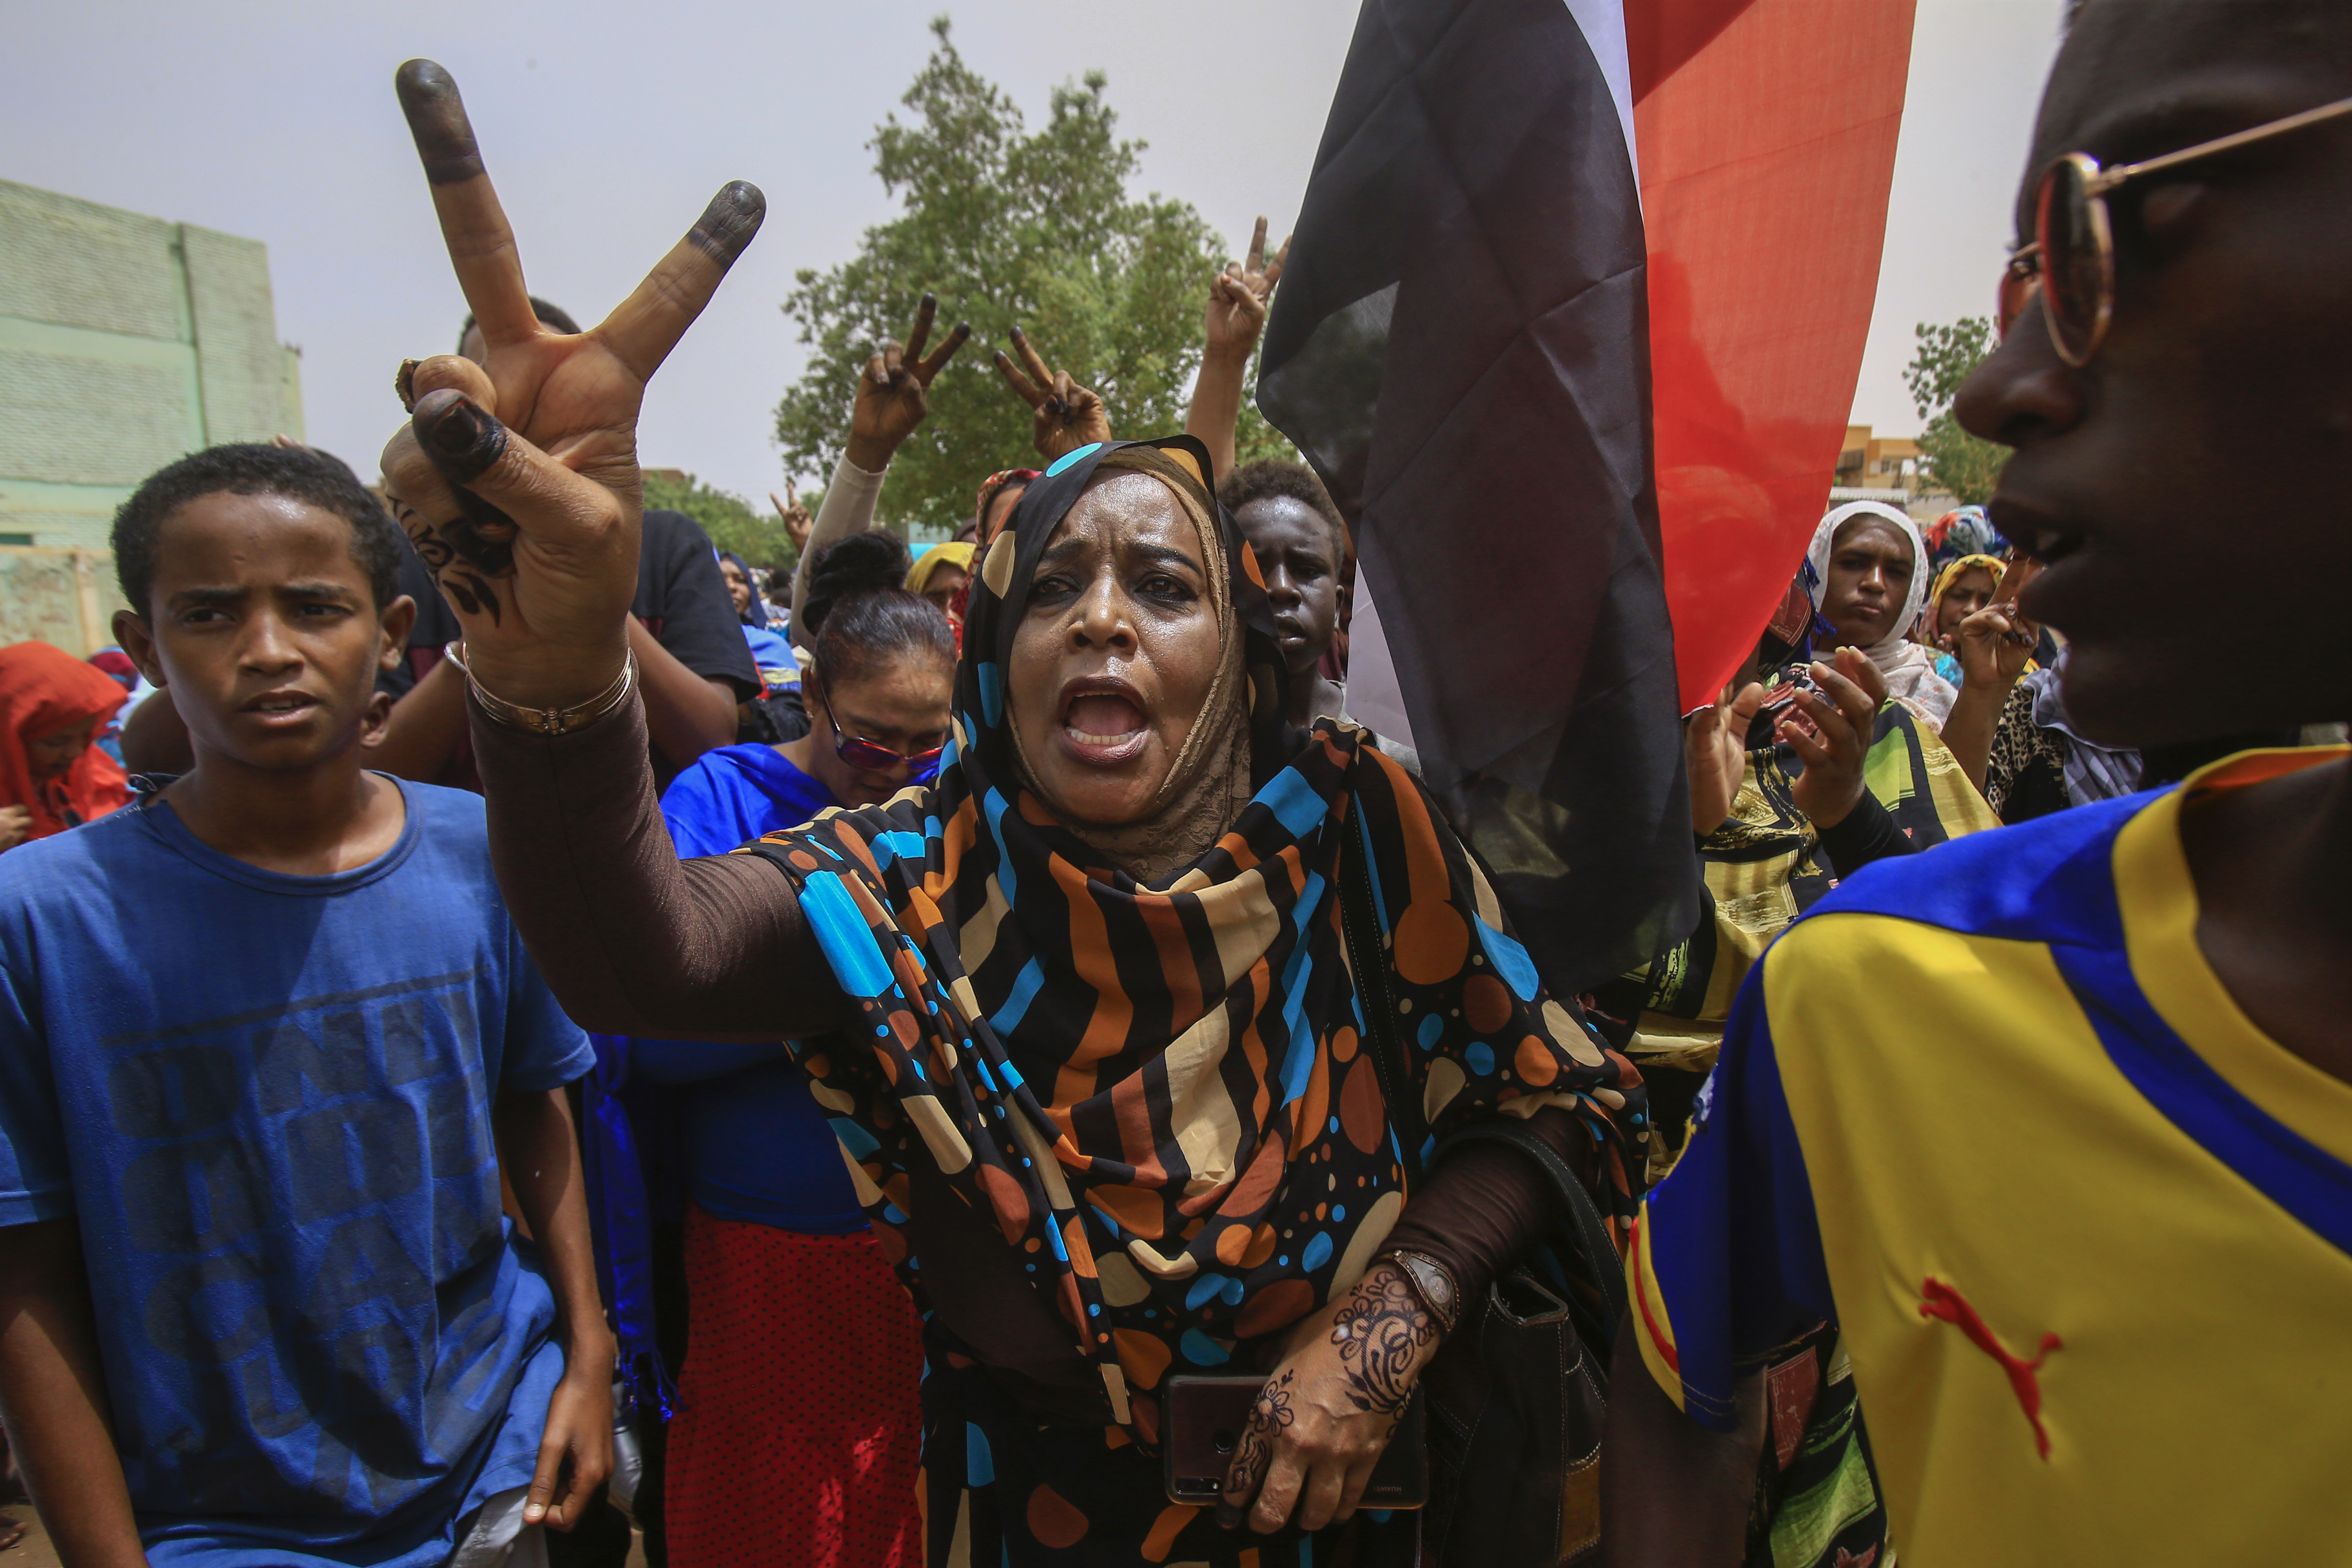 Demonstration against Sudan's ruling generals in Khartoum on 30 June (AFP)